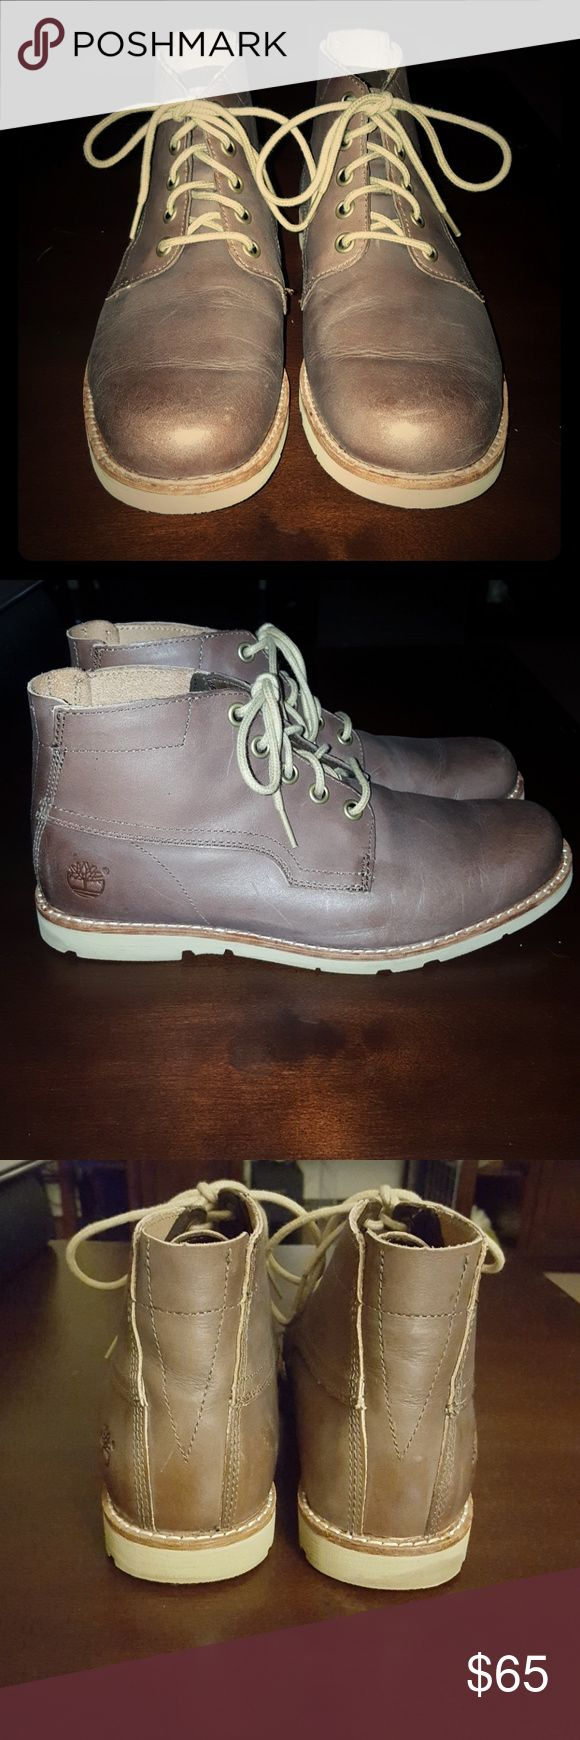 """Earthkeeper's Rugged LT Chukka Boot EUC (worn less than 5 times), lace-up ankle boot in Brown full-grain leather from a Silver-rated tannery. Shaft measures about 5"""" from arch. Heel measures about 0.75"""". Platform measures about 0.5"""". Stamped logo at heel side; Contrast welt; 100% recycled PET laces, lining, and footbed cover; Anti-fatigue removable footbed; Durable Green Rubber (42% recycled rubber) outsole. 1 small scratch on the side of the right boot, see photo, otherwise these are in…"""